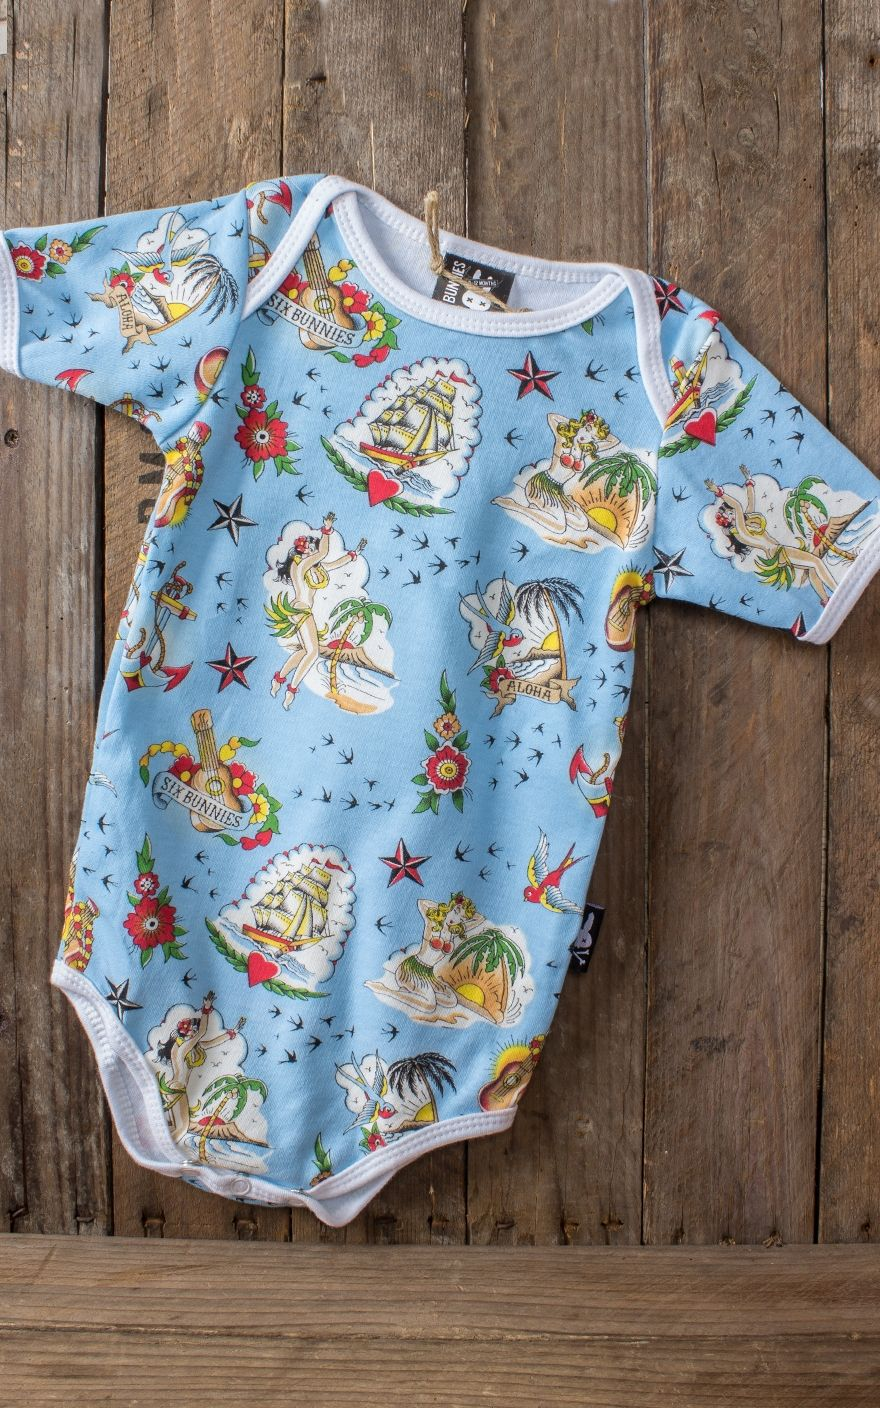 Babygeschenk Six Bunnies Baby Geschenk Set Aloha Sailor Hawaii